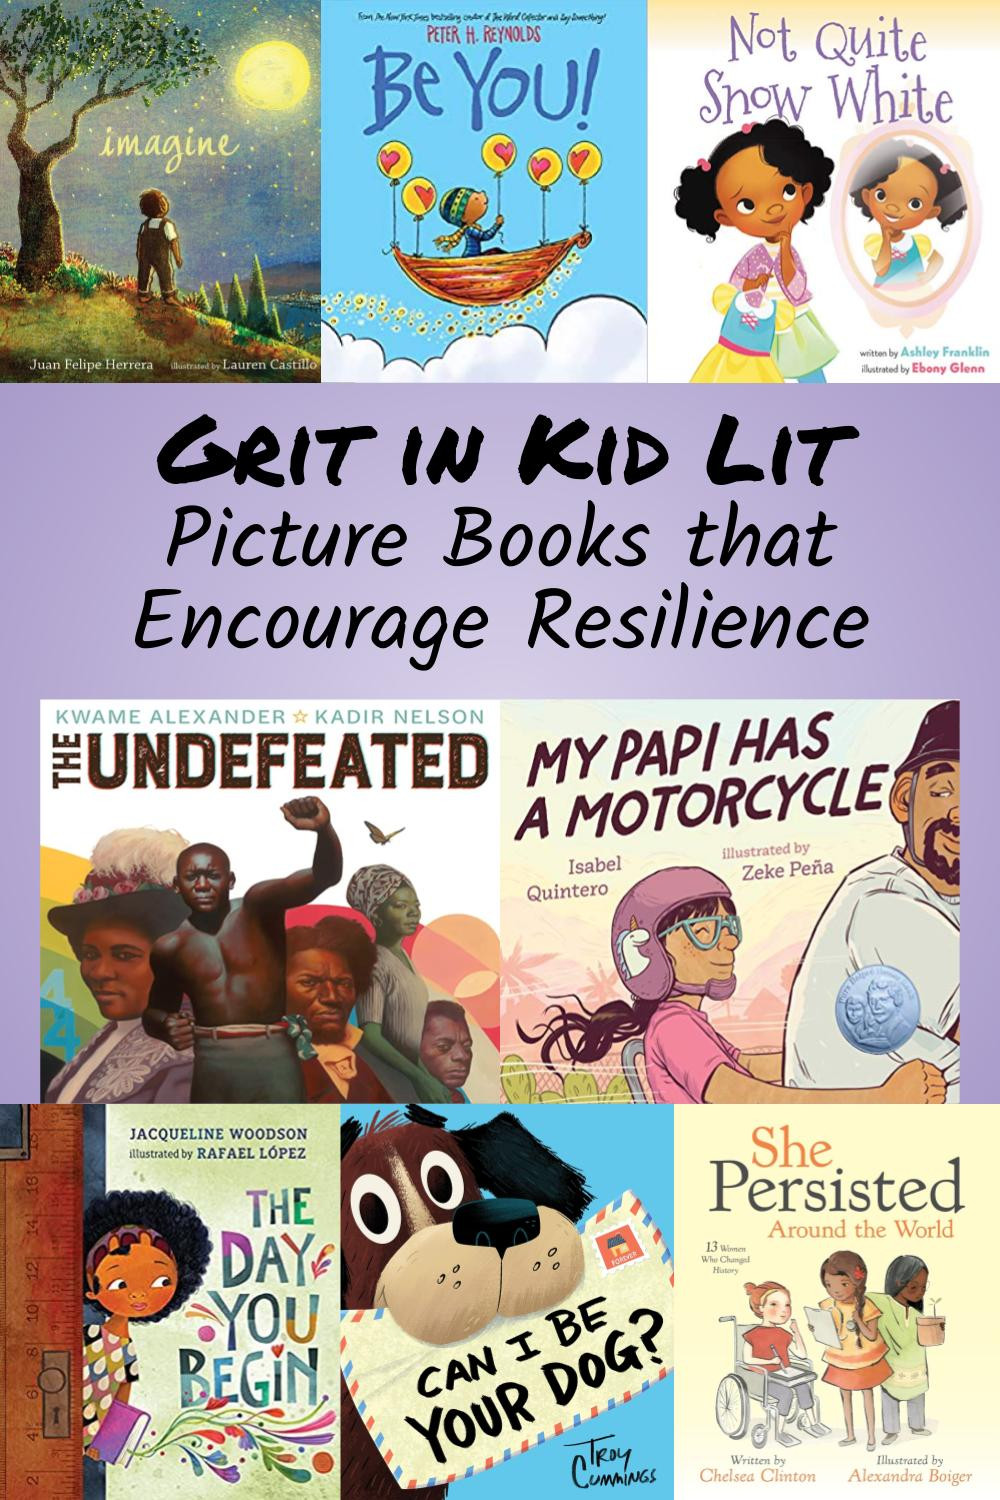 Collage of Book Covers - Picture Books that Encourage grit and resilience in kids